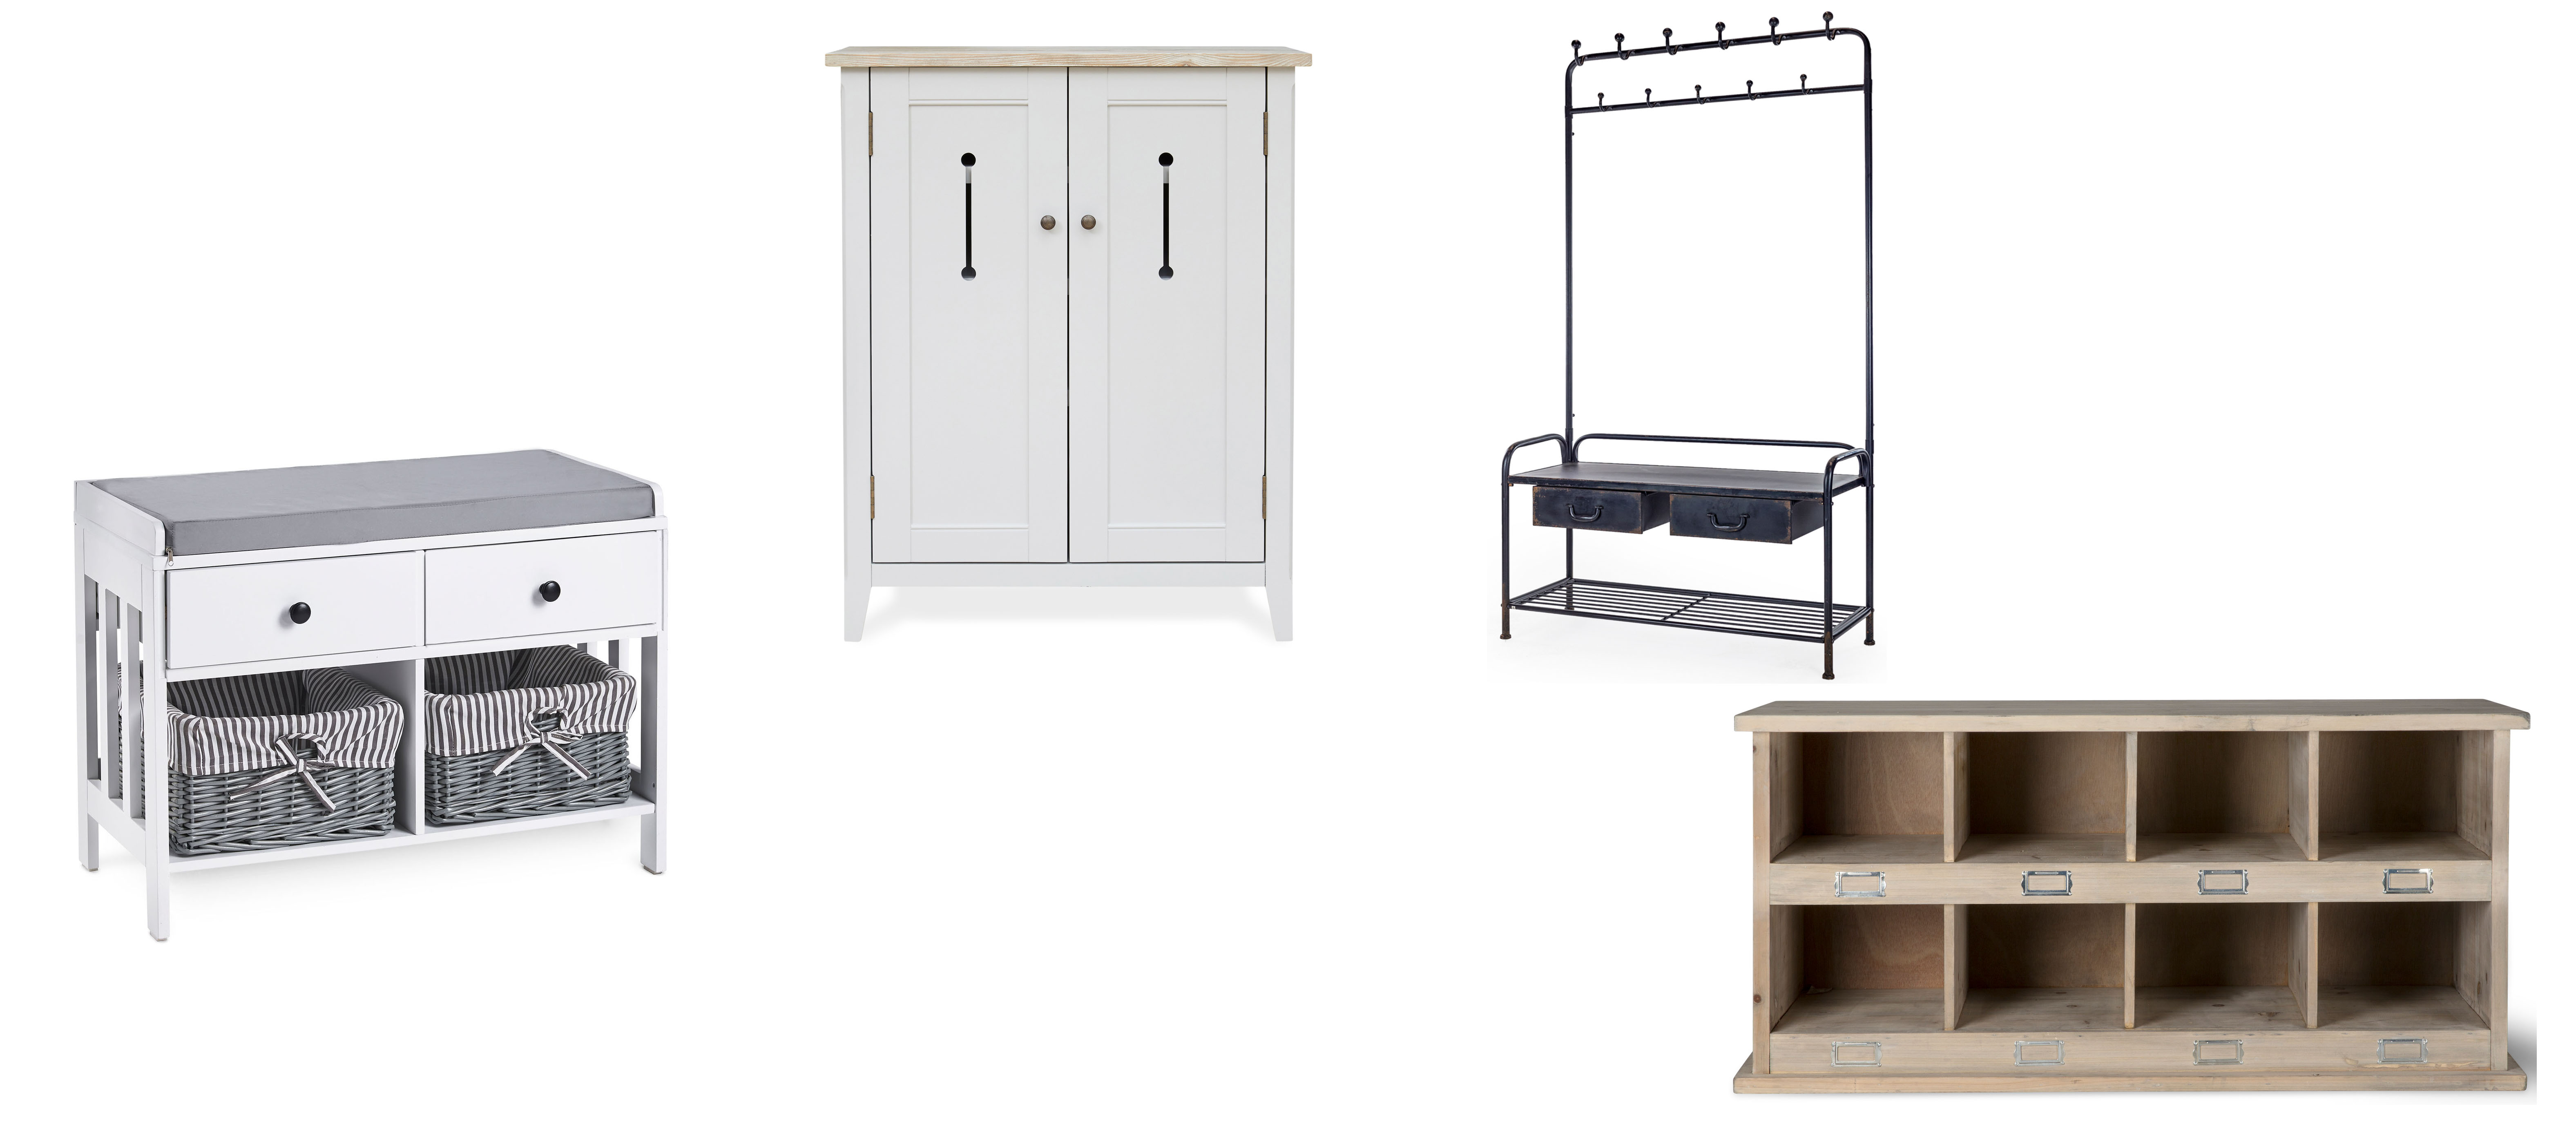 (l-r) VanHaus Hall Seat & Storage Unit, £64.99, Domu Brands; Signature Grey Shoe Storage Cupboard, £319, Wooden Furniture Store; Cleo Black Metal Coat Rack Bench, reduced from £280 to £255, Alexander & Pearl; Chedworth 8 Shoe Locker, Spruce, £180, Garden Trading (Domu Brands; Wooden Furniture Store; Alexander & Pearl/Garden Trading/PA.)